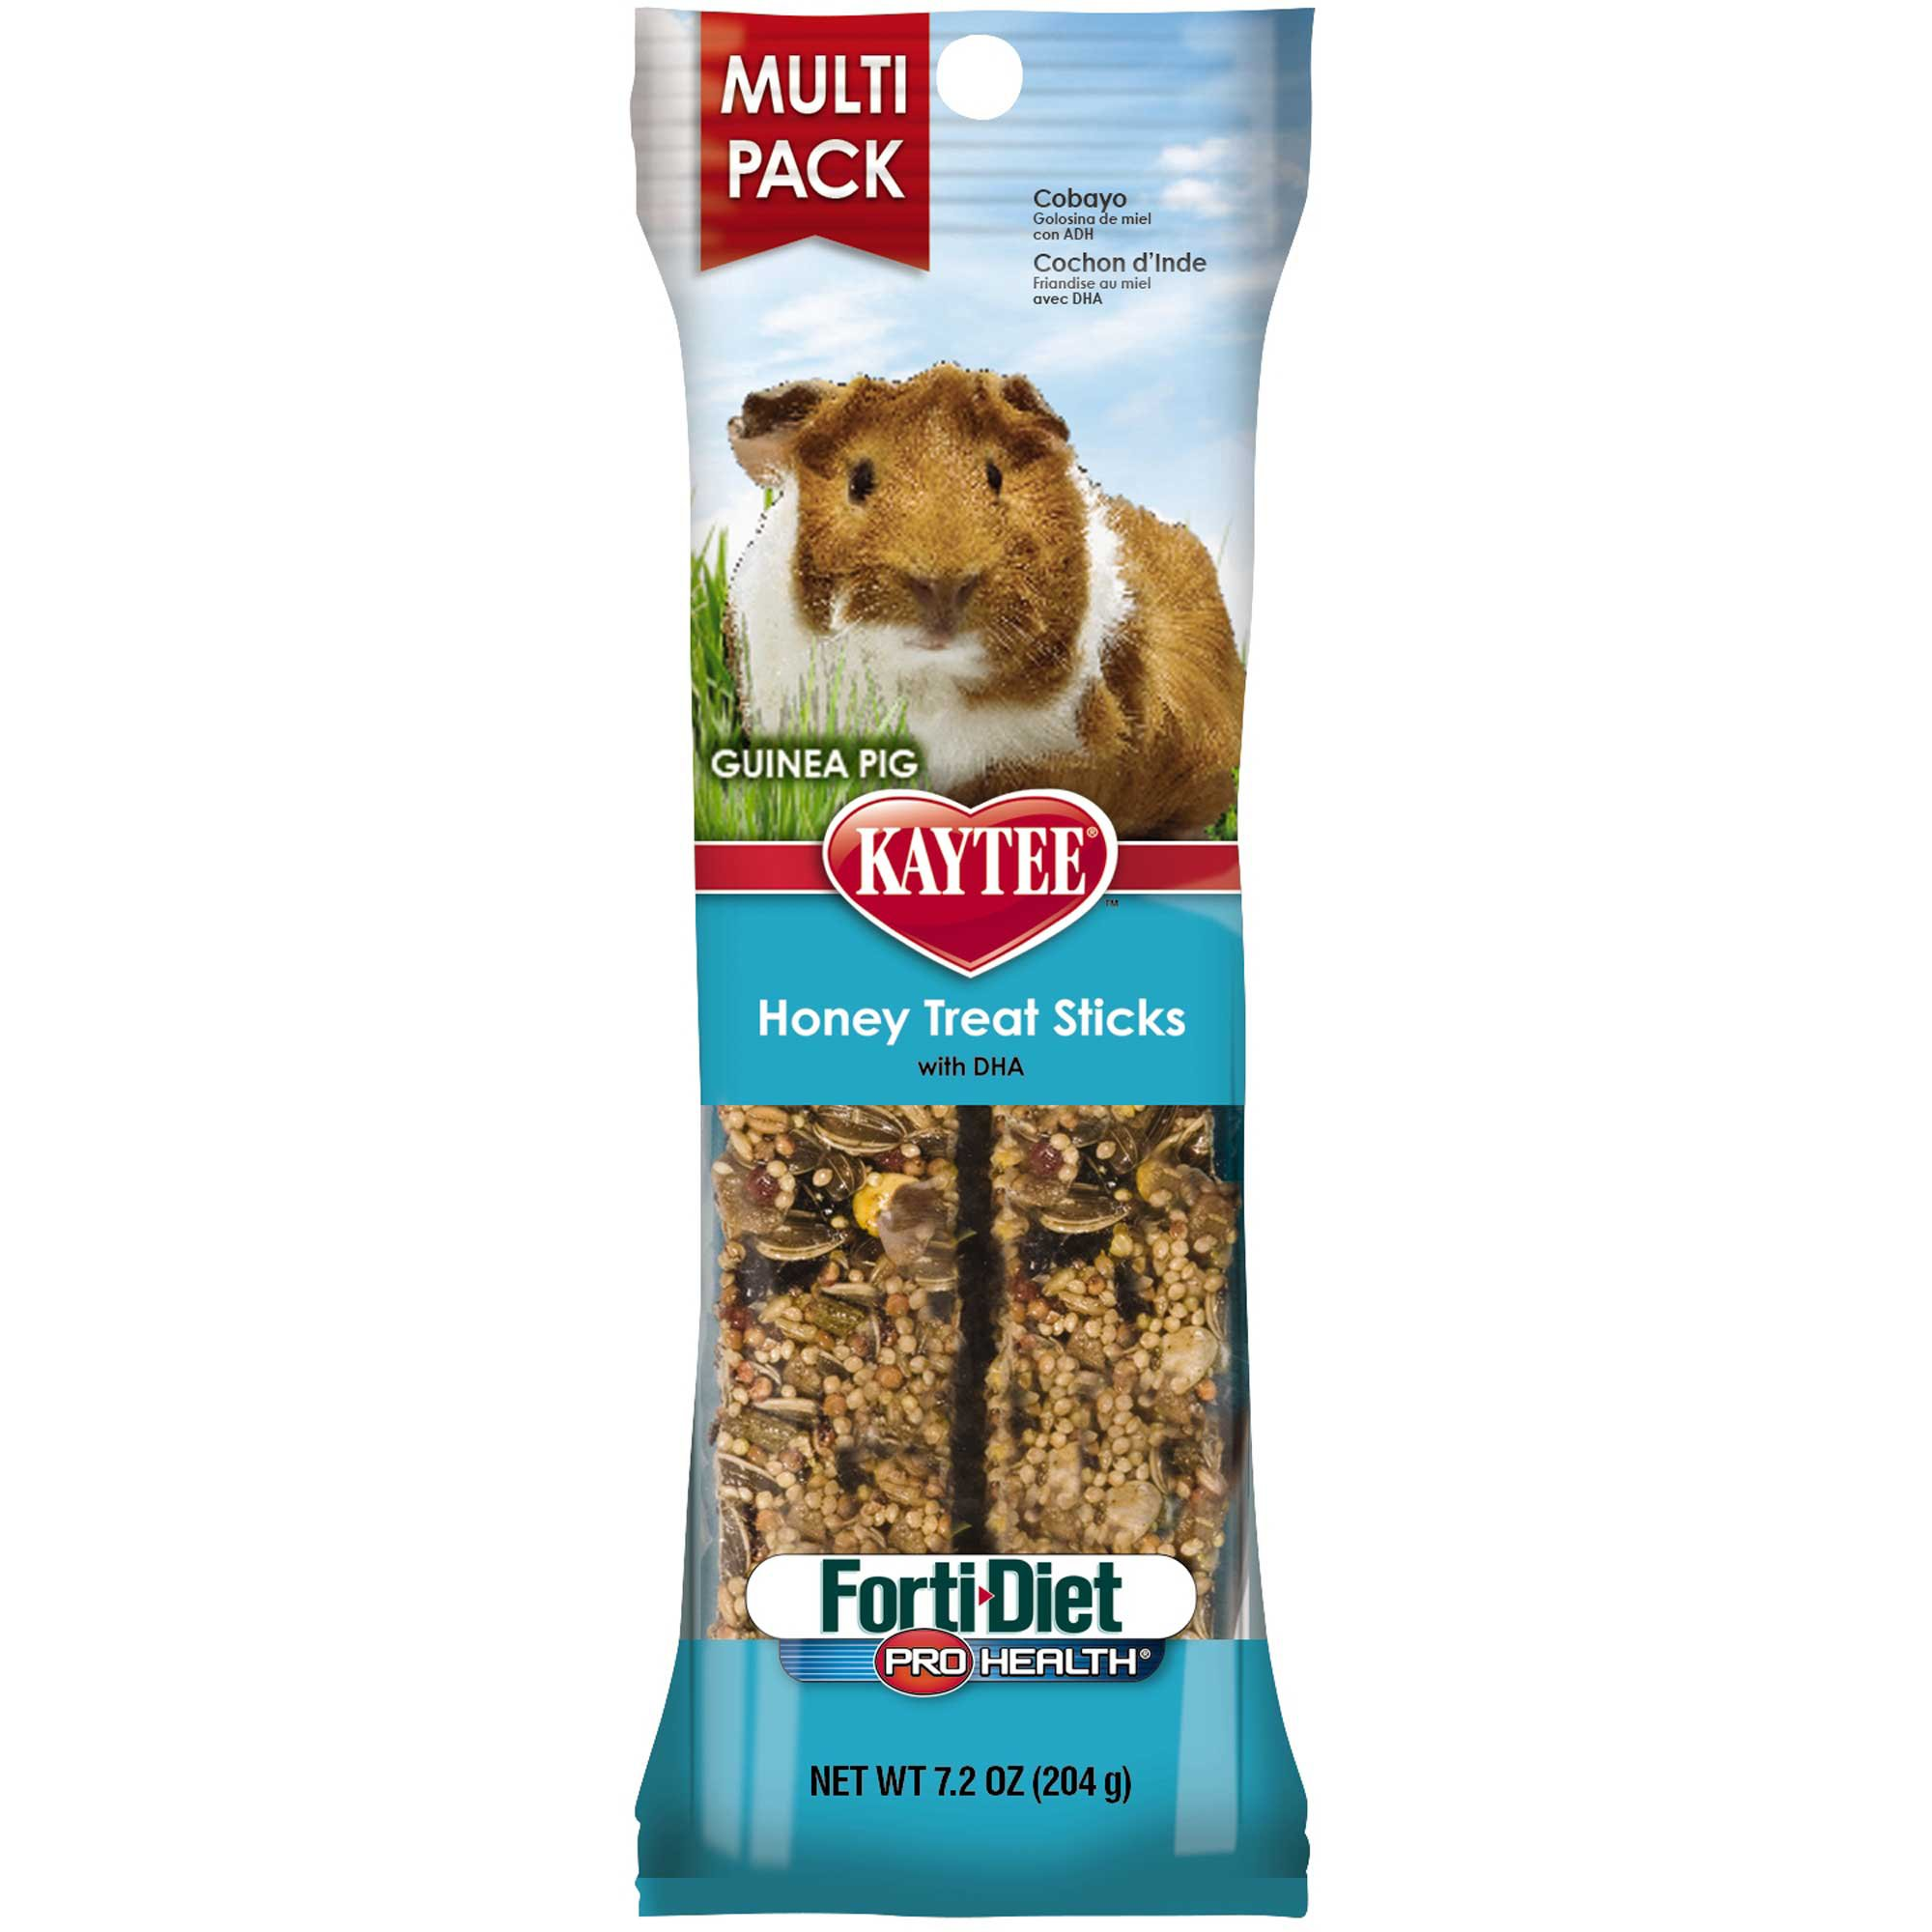 Kaytee Forti-Diet Pro Health Honey Stick Guinea Pig Treats